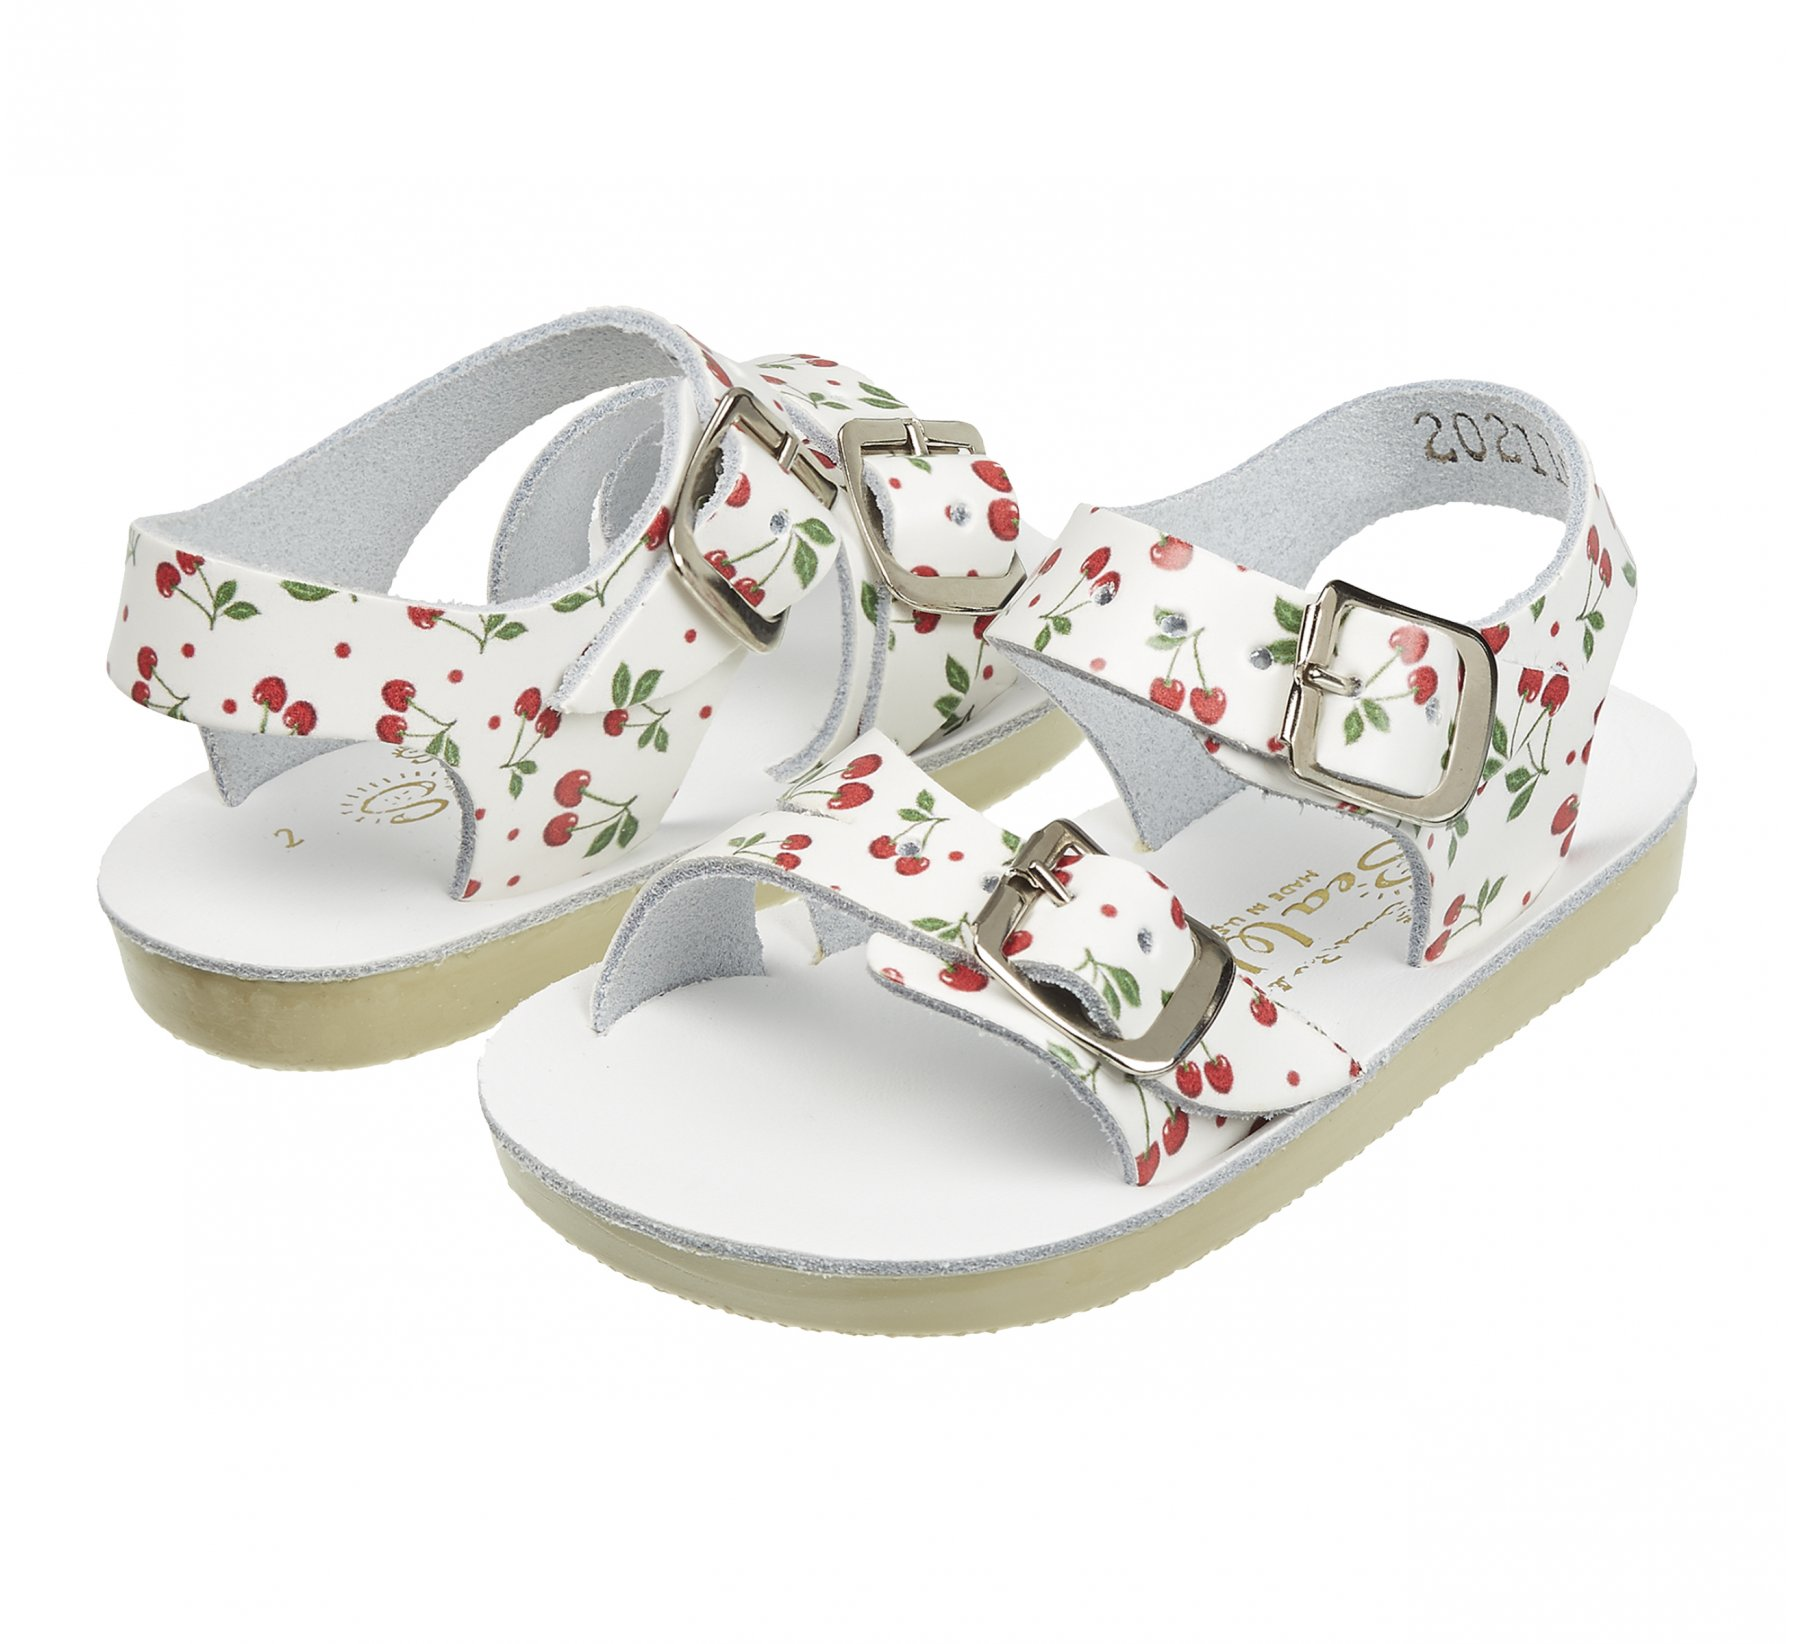 Seawee Cherry  - Salt Water Sandals